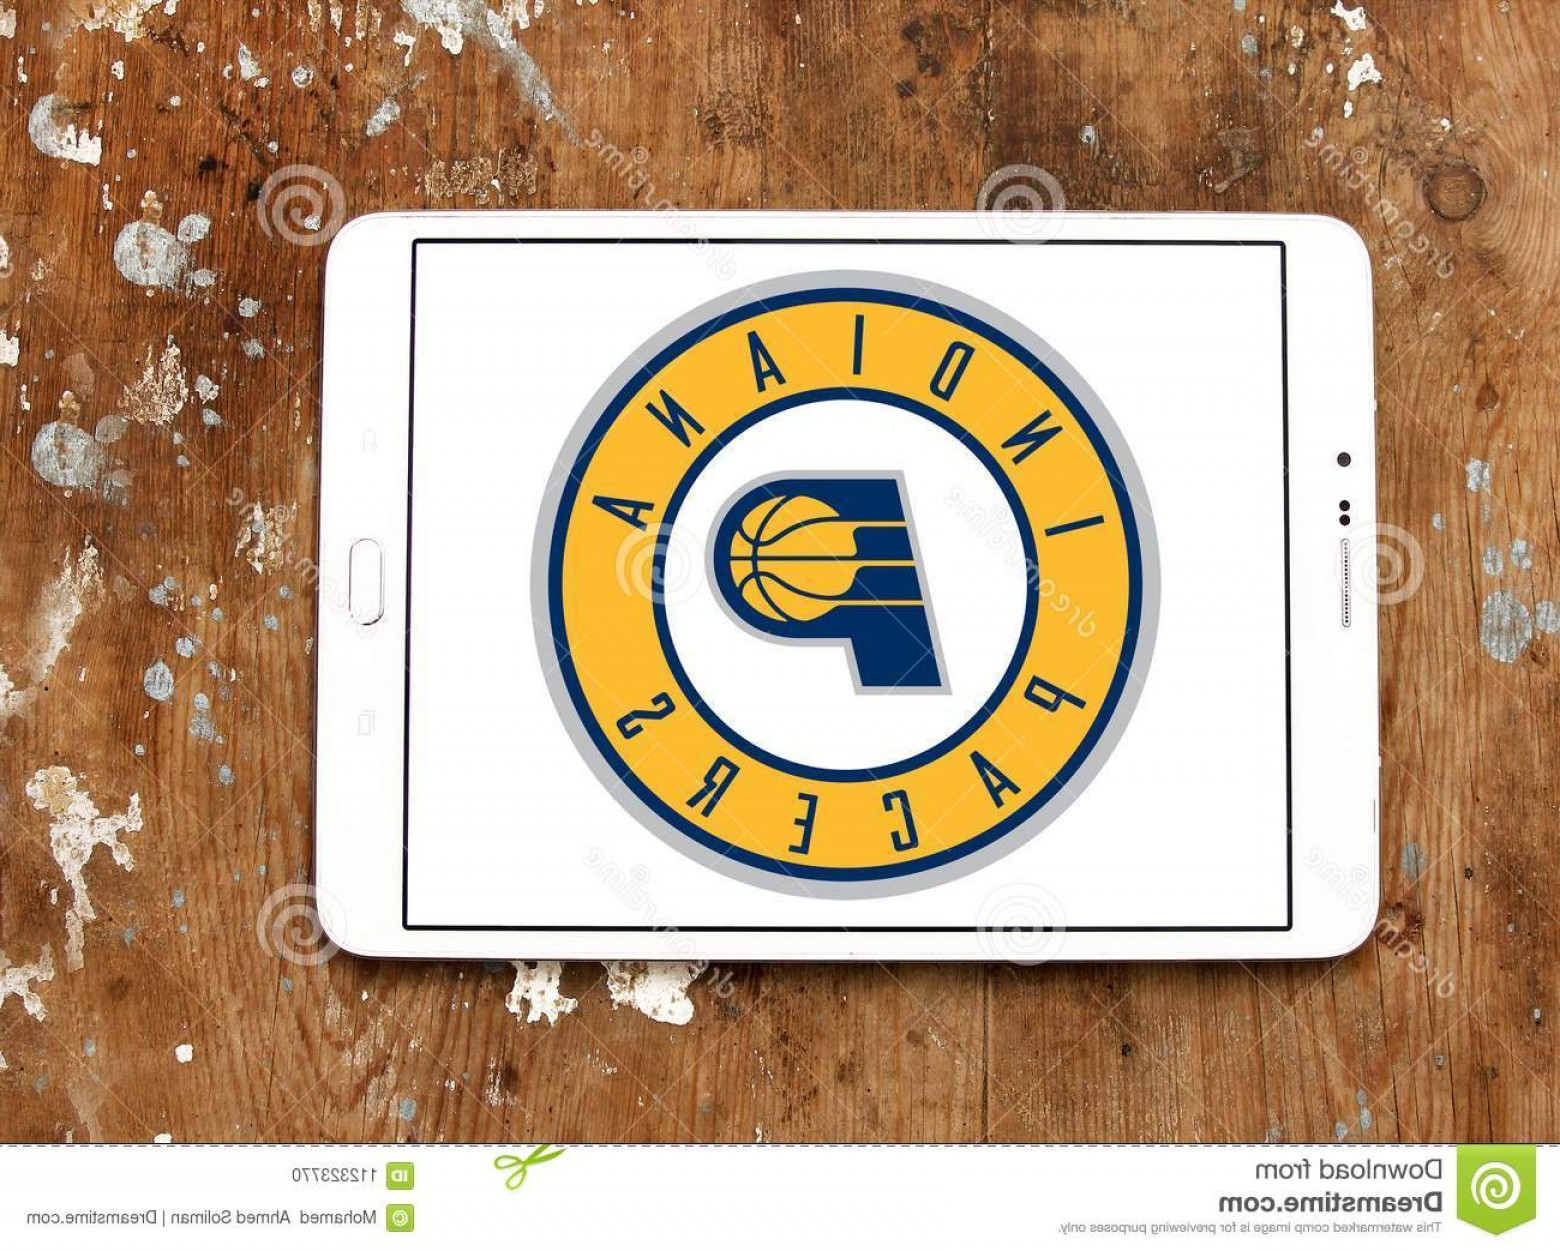 Indiana Pacers Logo Vector: Indiana Pacers American Basketball Team Logo Logo Indiana Pacers American Basketball Team Samsung Tablet Indiana Pacers Image